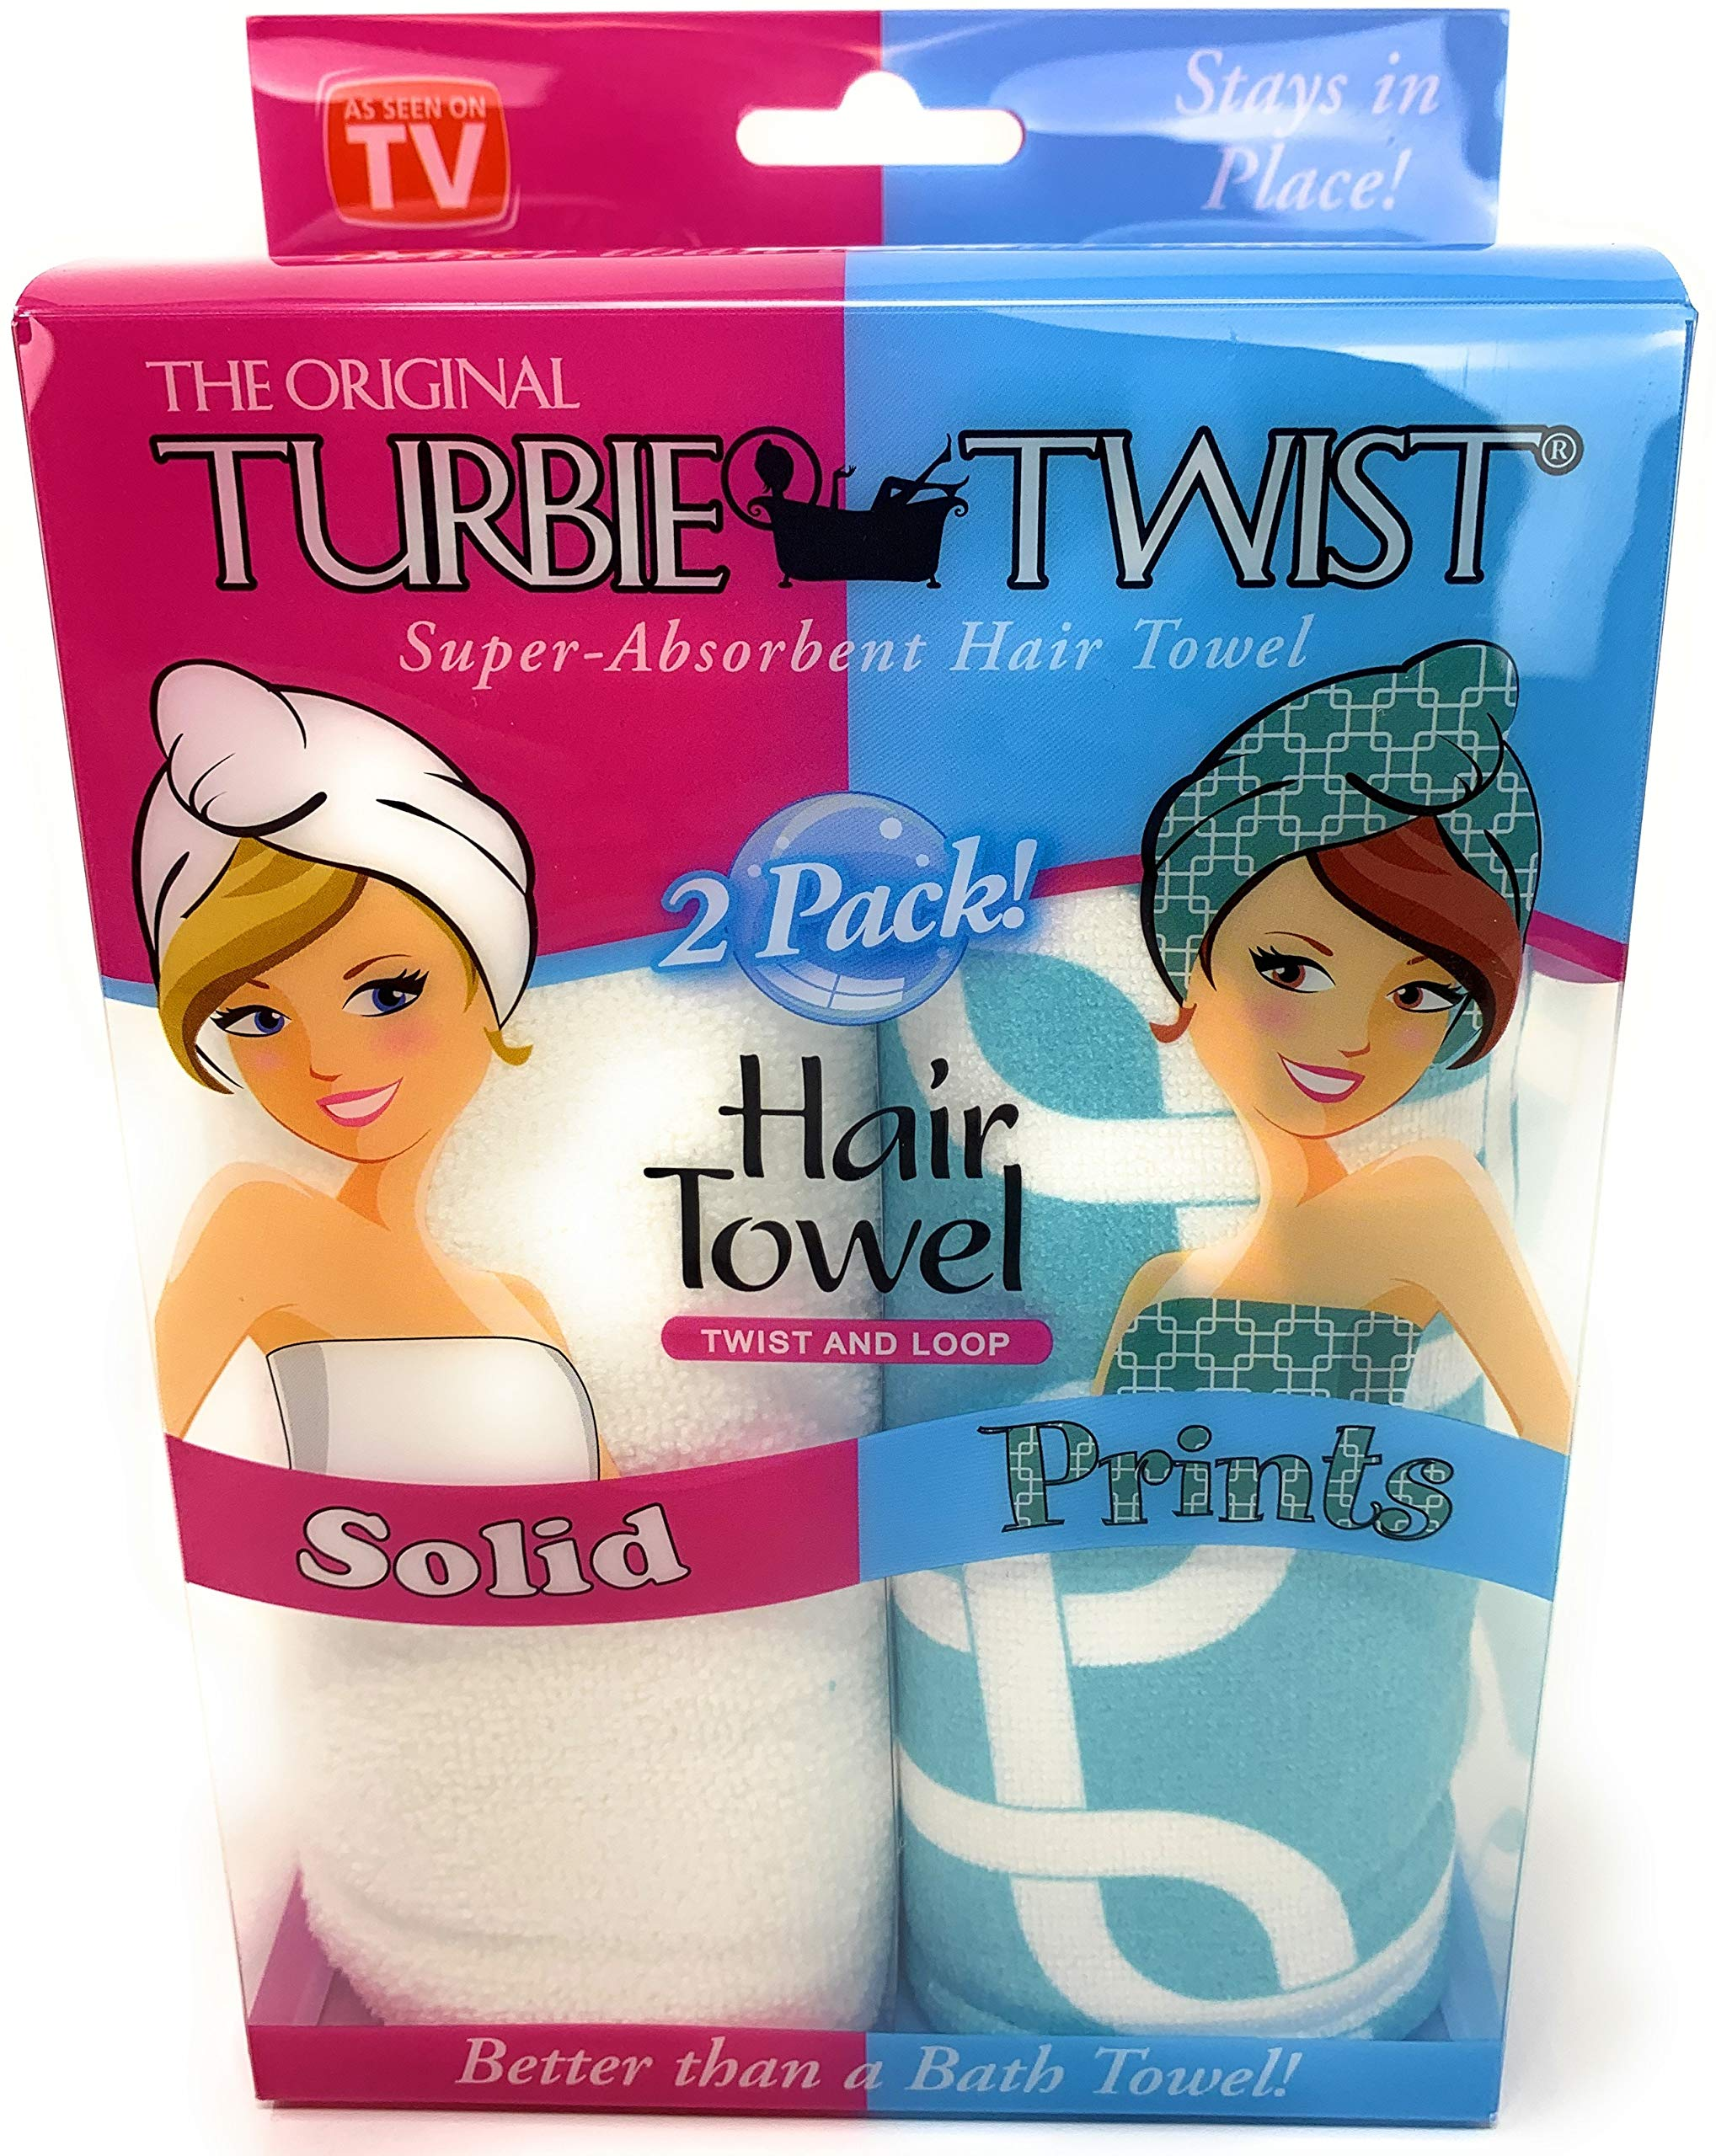 Turbie Twist Microfiber Hair Towel Wrap [2 Pack] - The Original Microfiber Hair Wrap As Seen On TV! Solid - Prints in White and Blue Geo Hair Turban Towel Wraps Plopping Towel for Long and Curly Hair by Turbie Twist